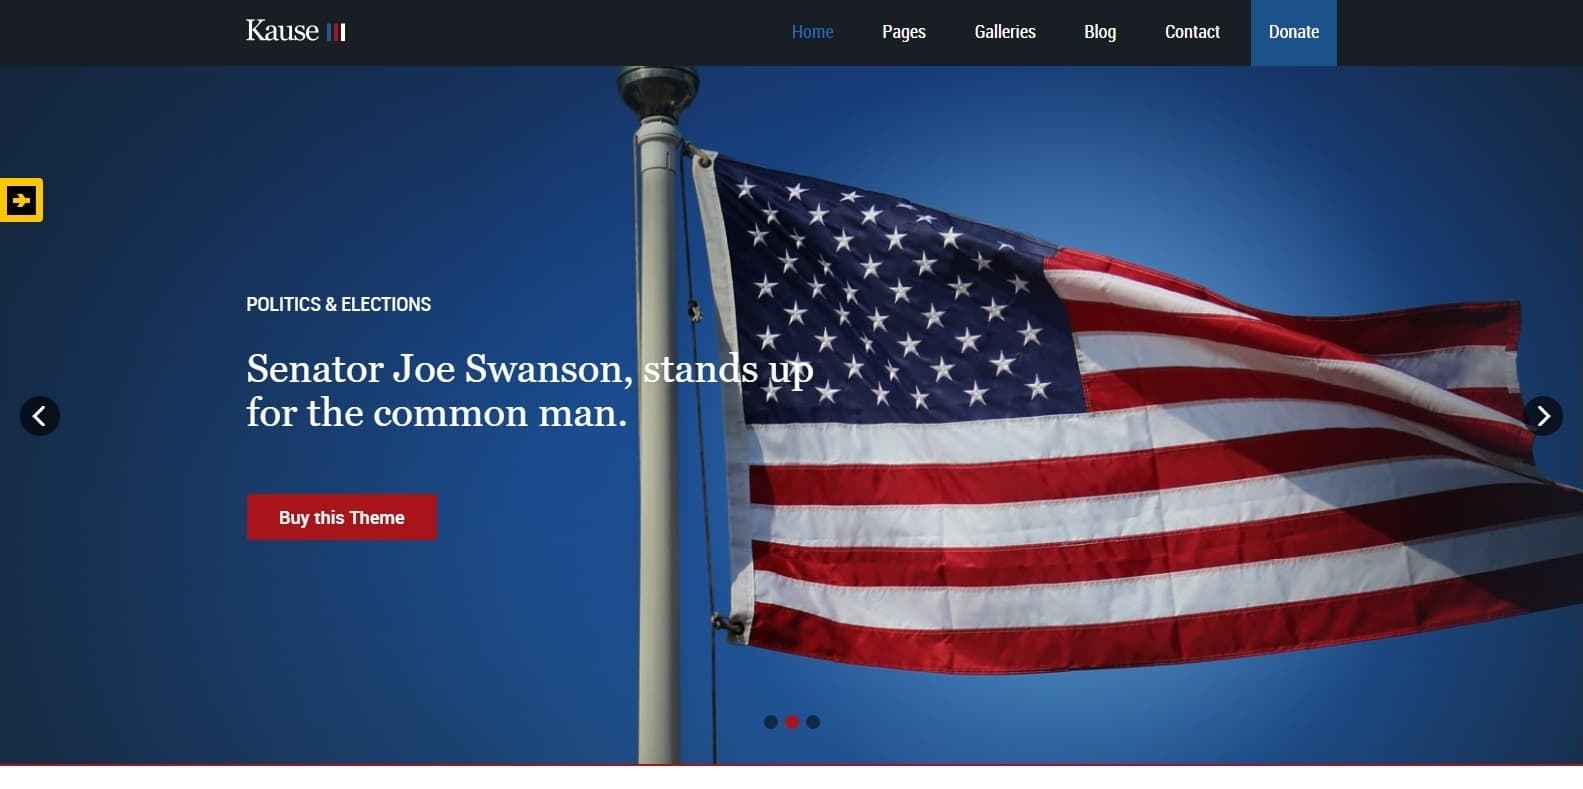 Kause-political-website-template